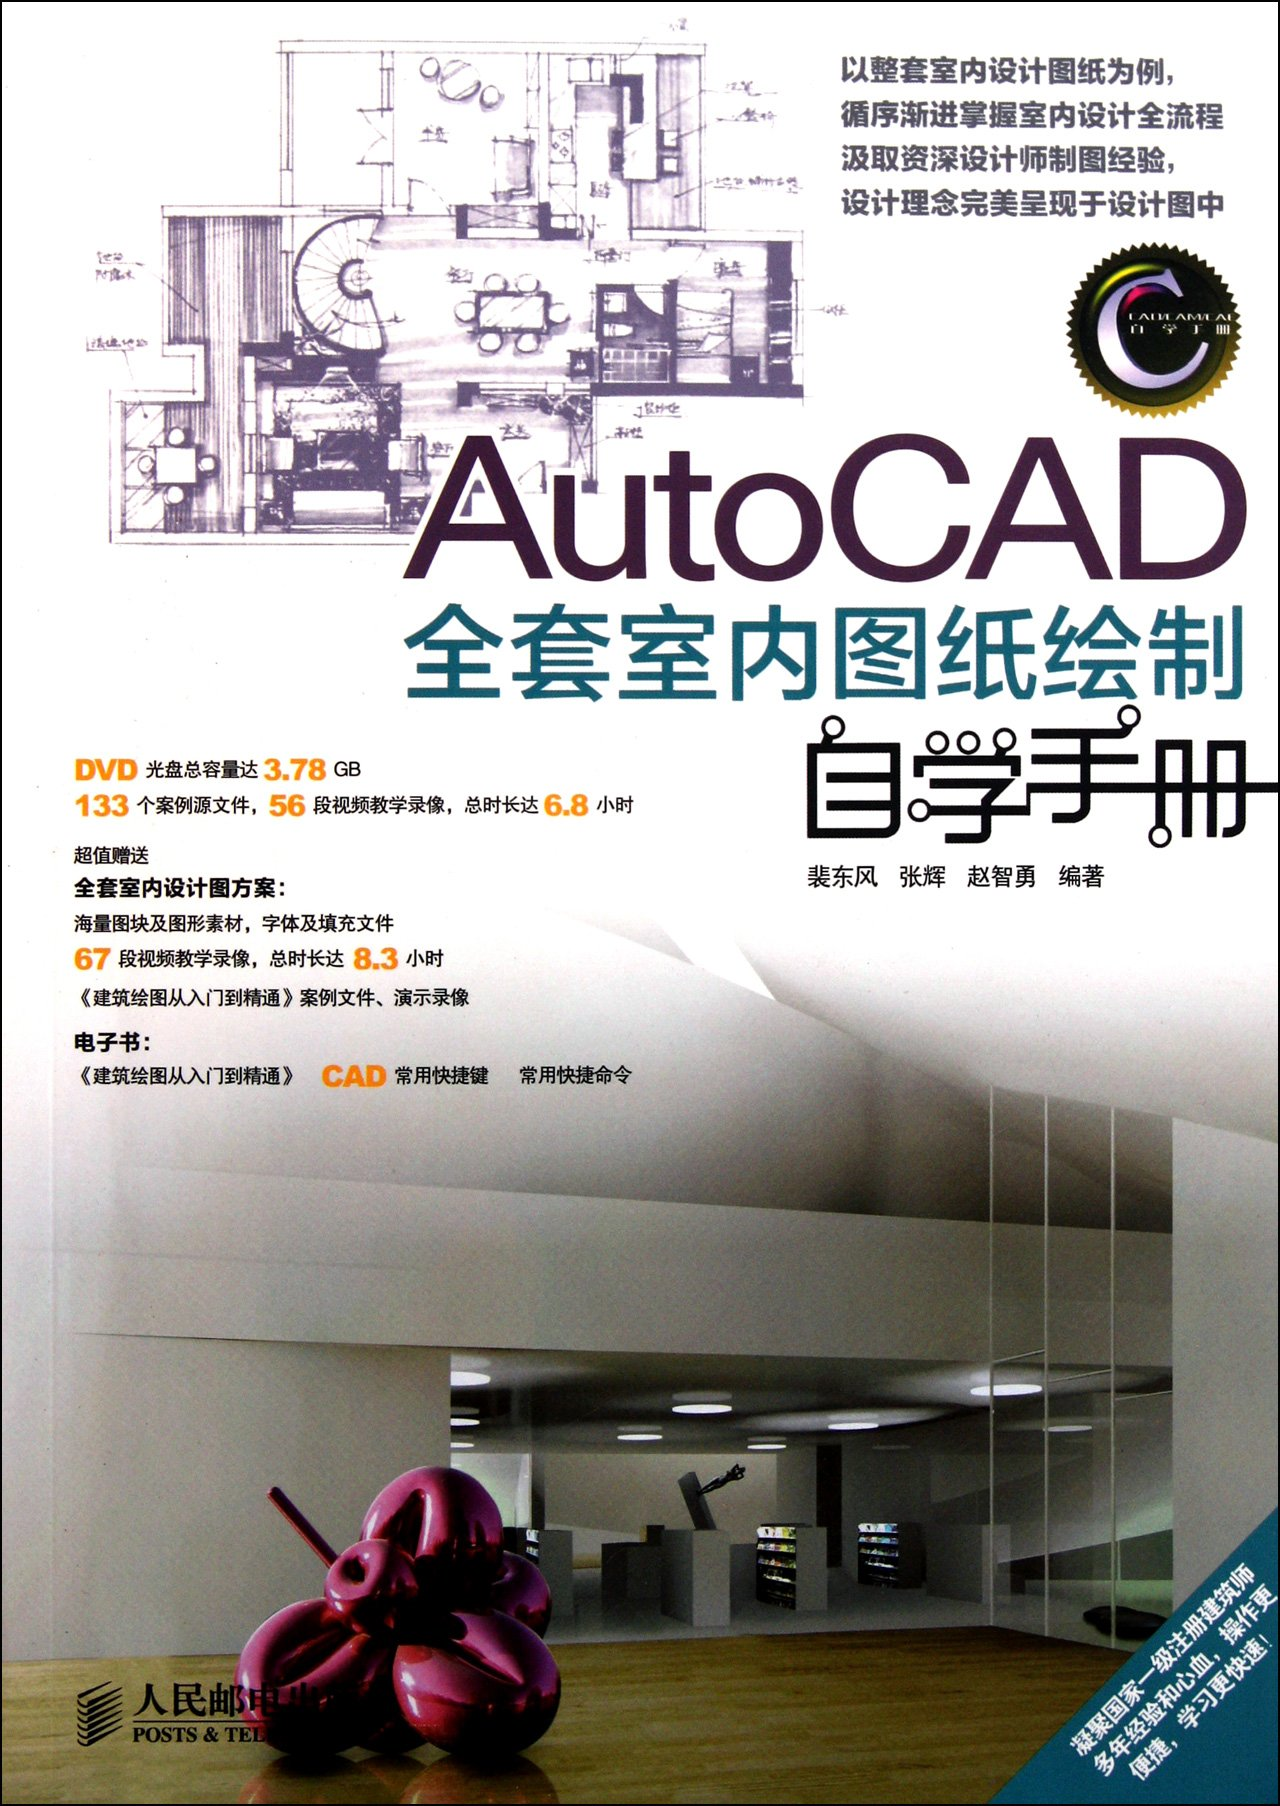 Download Self-study Handbook of AutoCAD Wholeset Indoor Drawings (1DVD Enclosed) (Chinese Edition) PDF